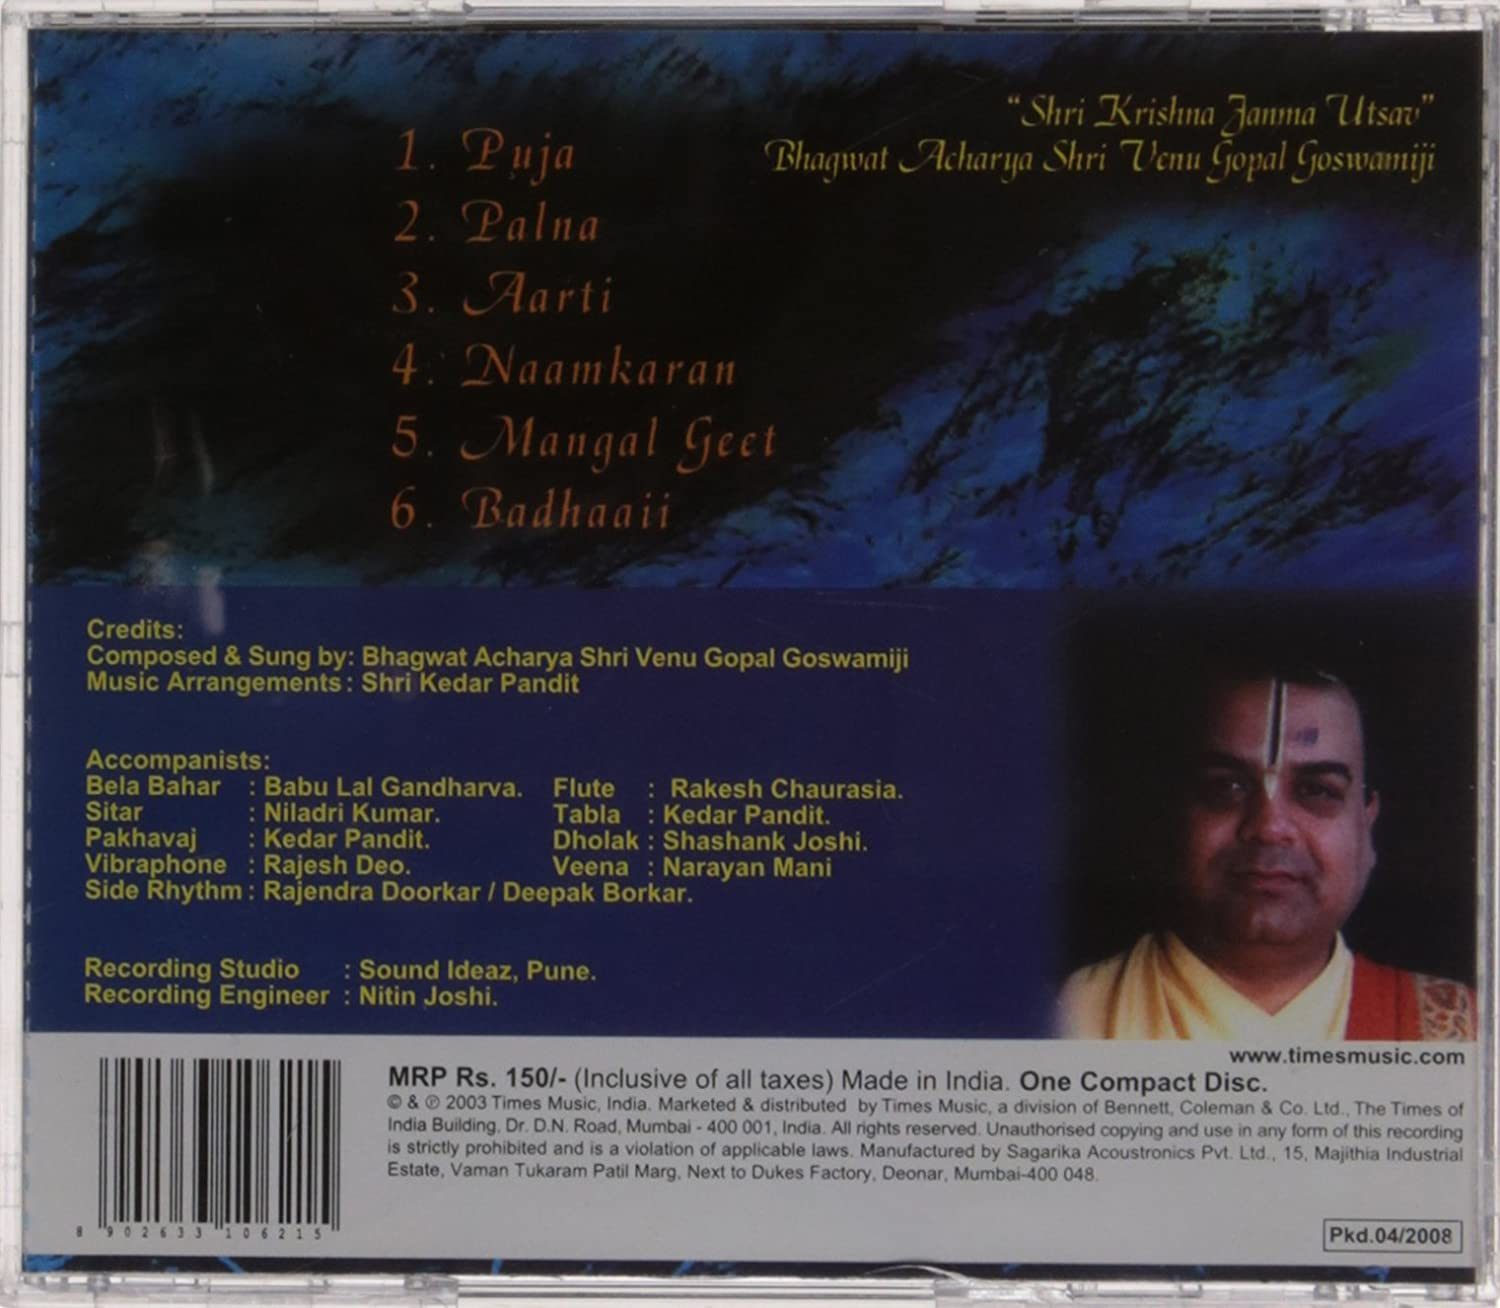 buy shri krishna janma utsav online at low prices in buy shri krishna janma utsav online at low prices in music store in